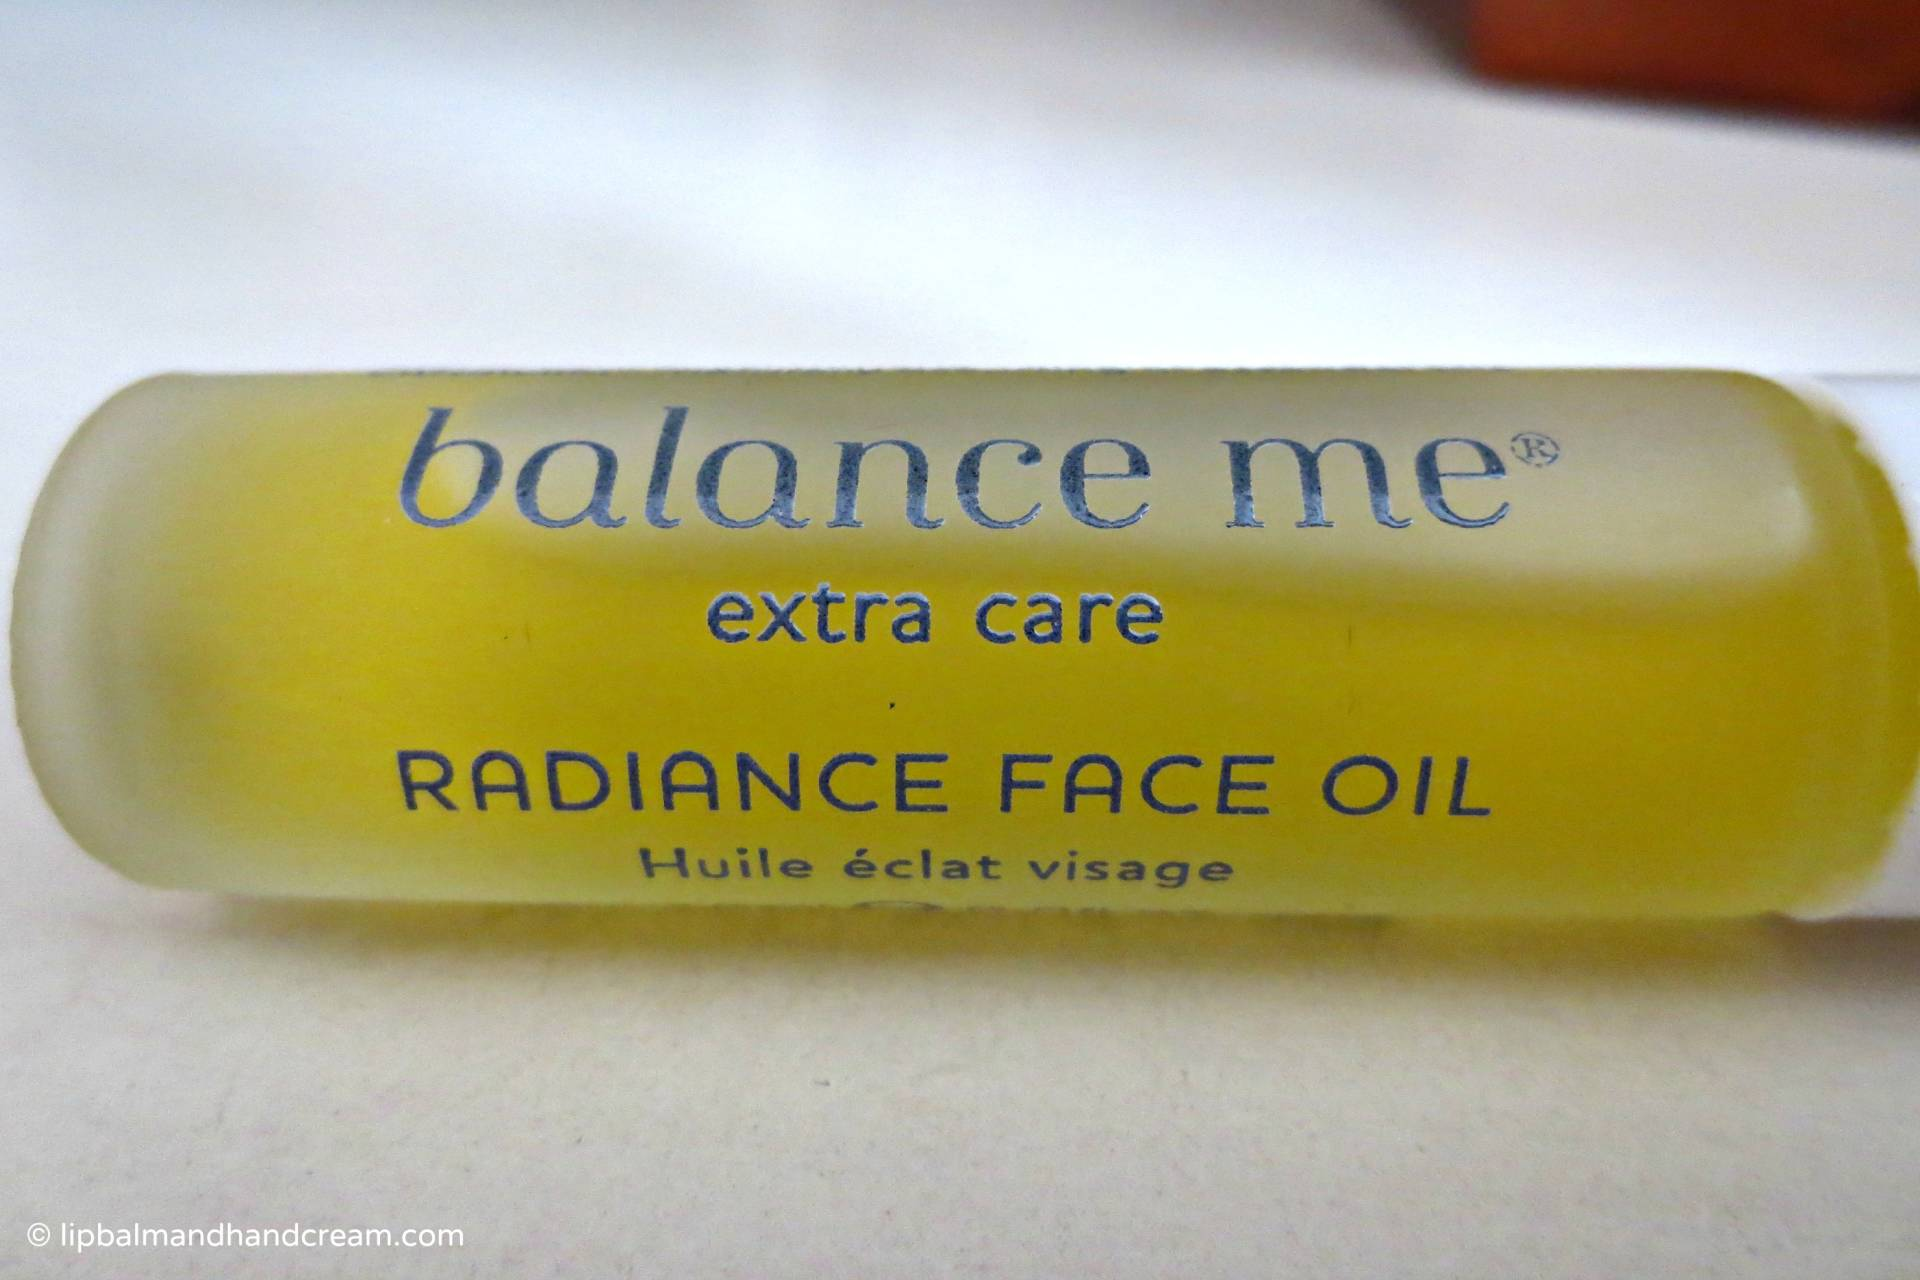 Another face oil?! Yes! Balance me radiance face oil review - Lip balm ...